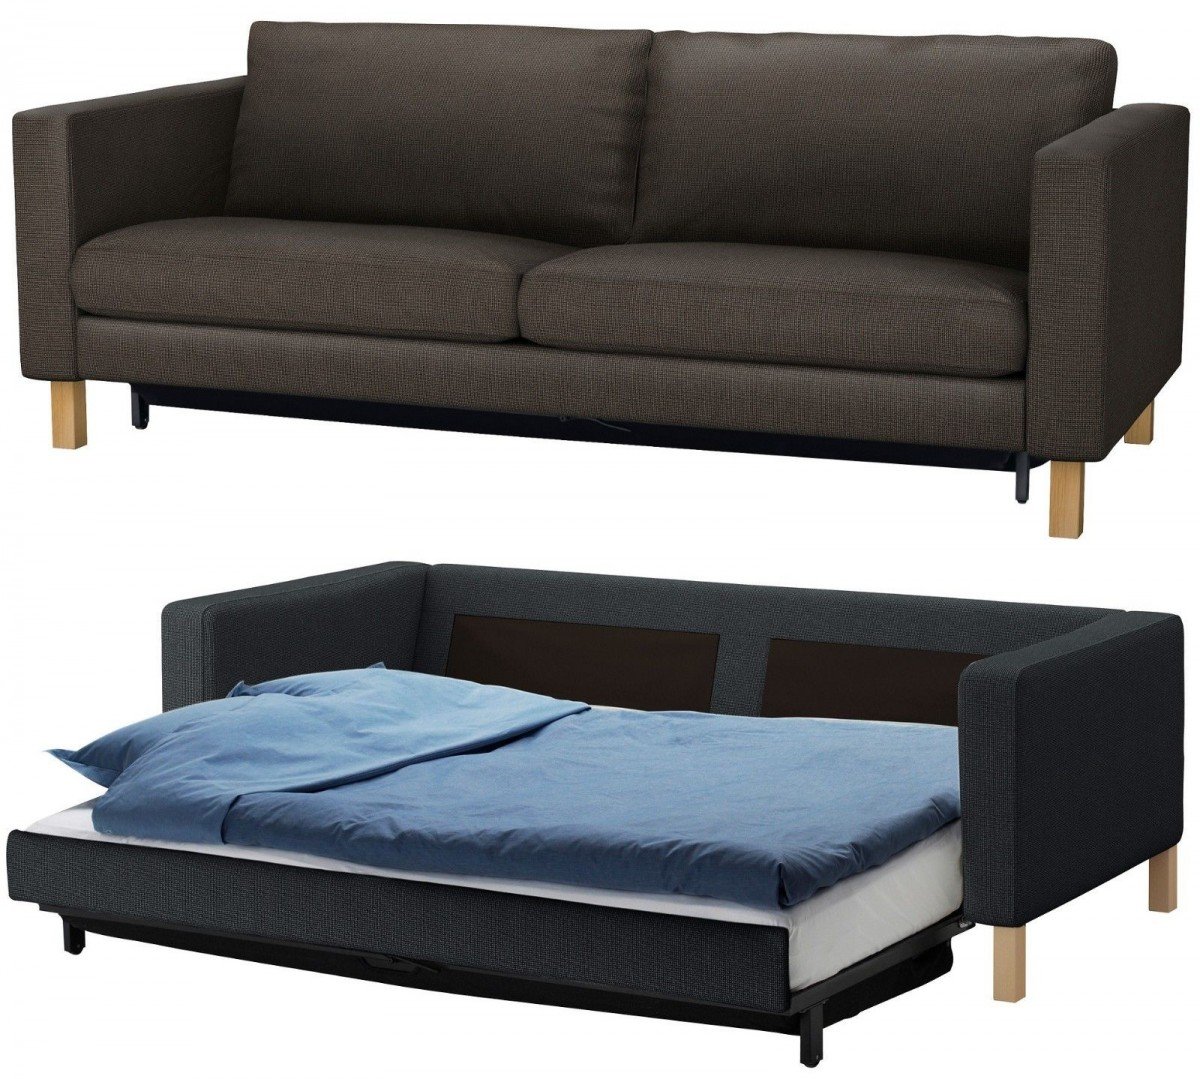 enhancing a stylish home with sectional sleeper sofa ikea interior exterior ideas. Black Bedroom Furniture Sets. Home Design Ideas